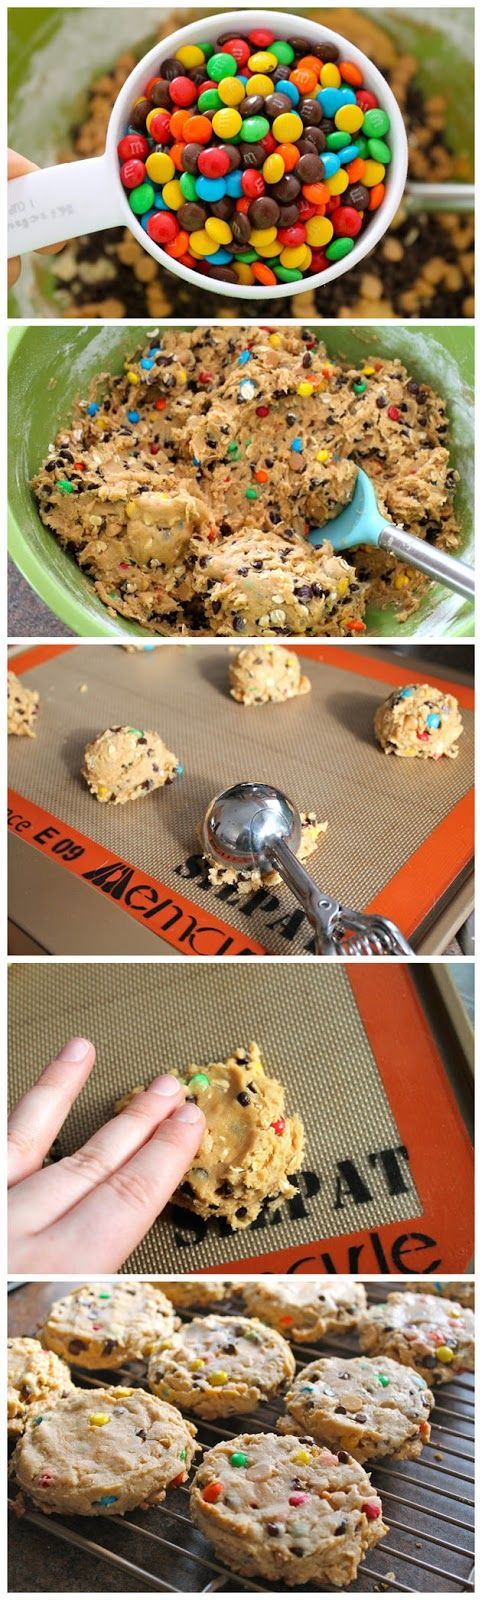 Soft Monster Cookies ~ They are soft, super peanut buttery and studded with chocolate chips, M & M's and peanut butter chips.